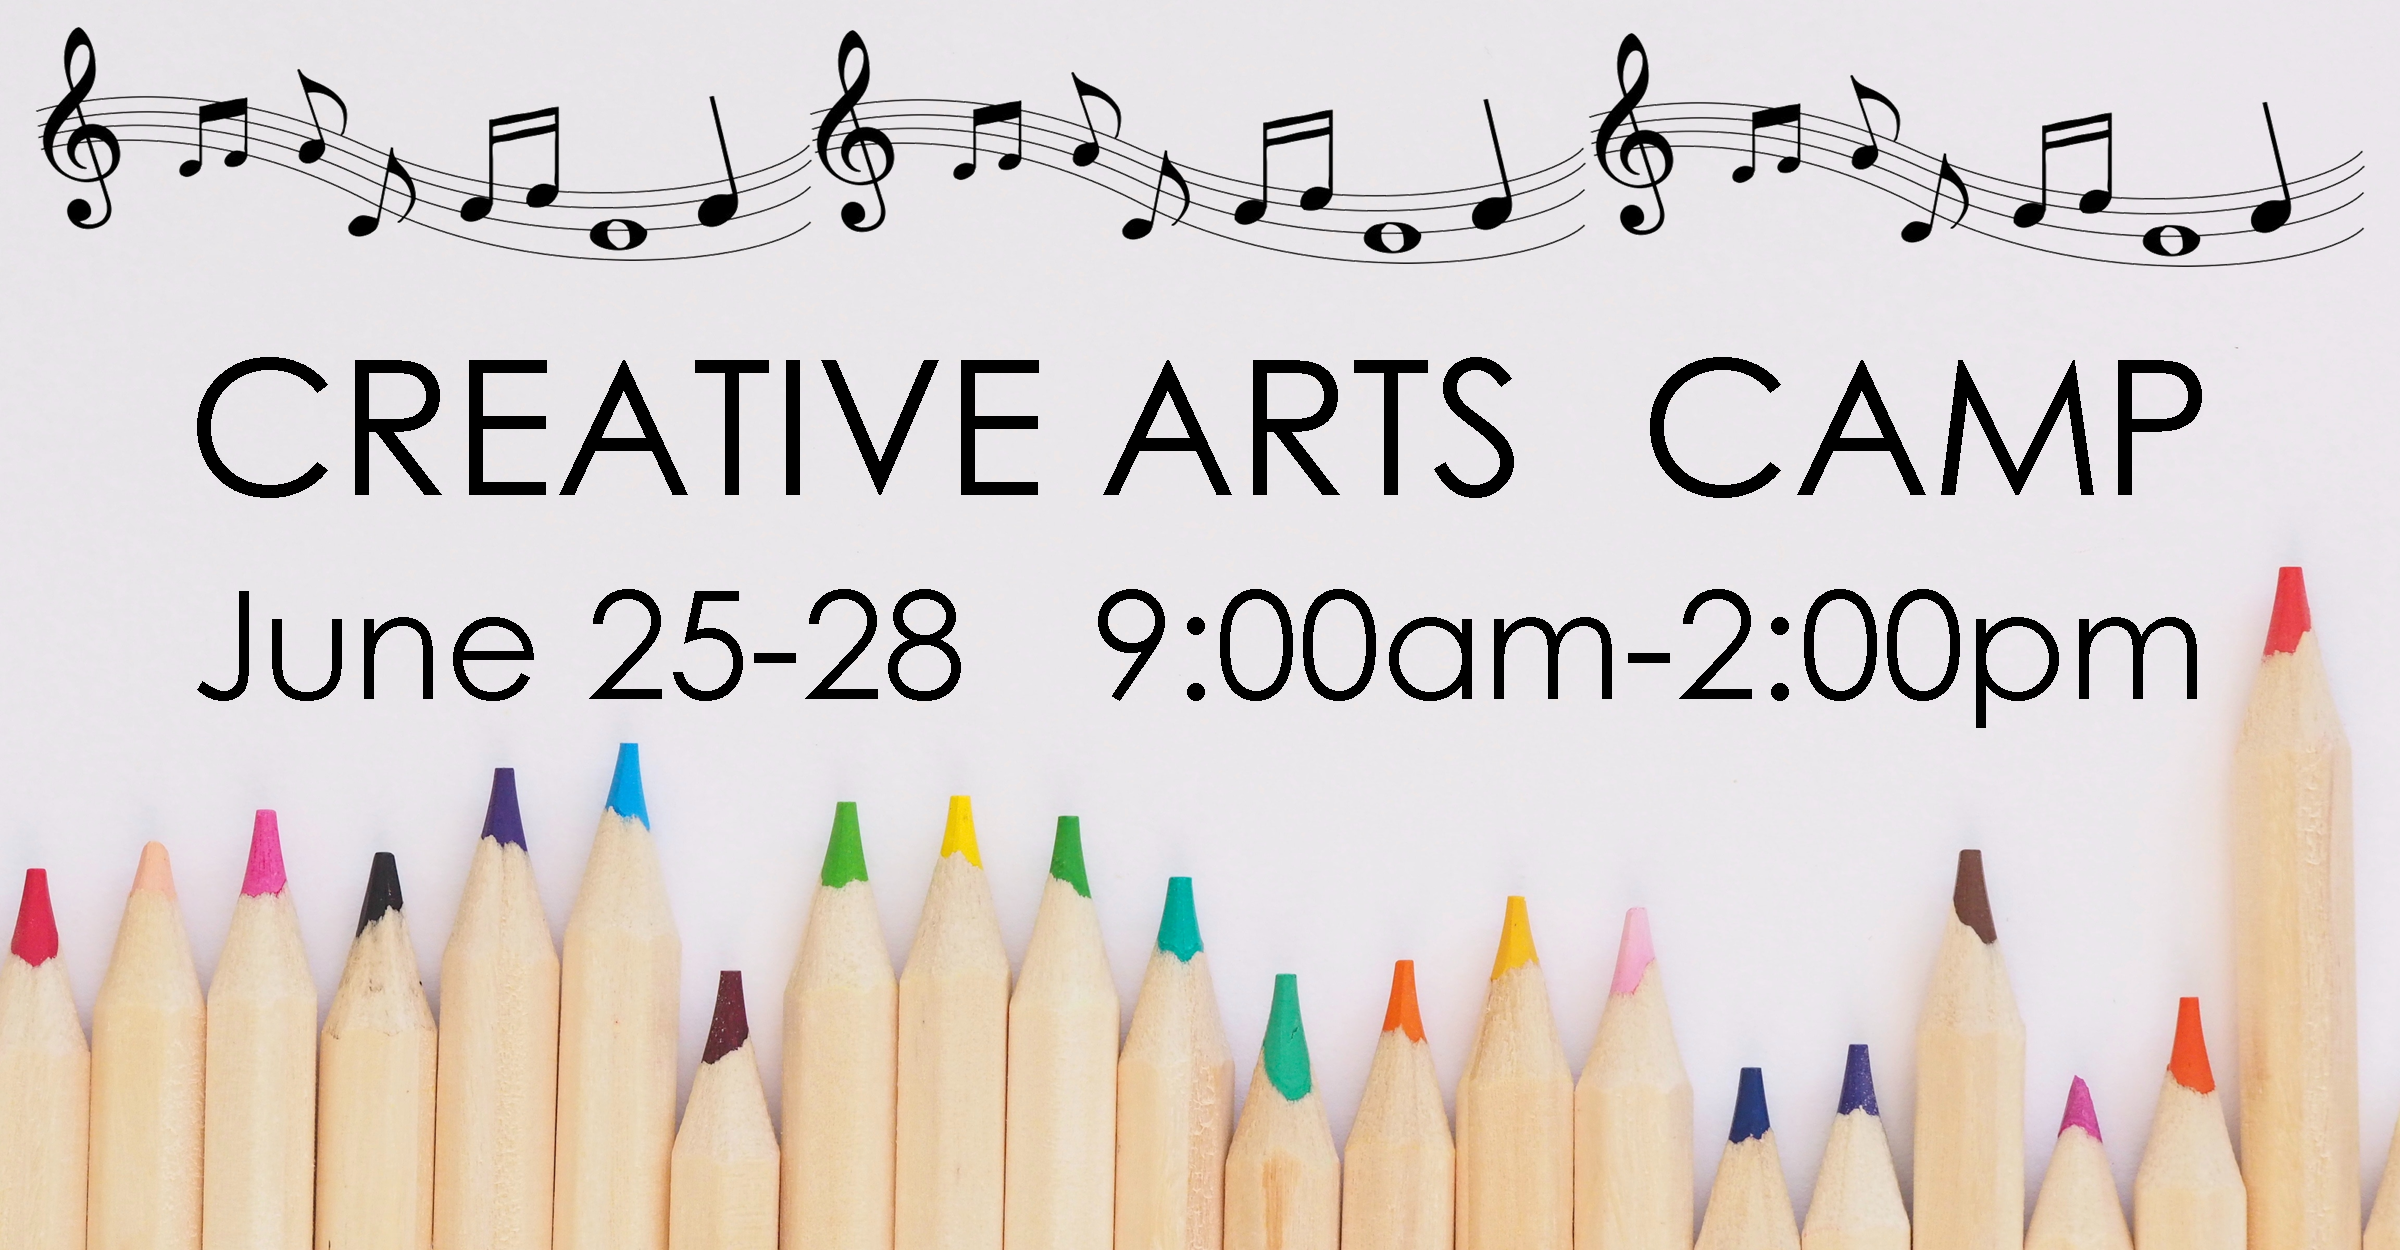 Creative arts camp facebook 060618.png